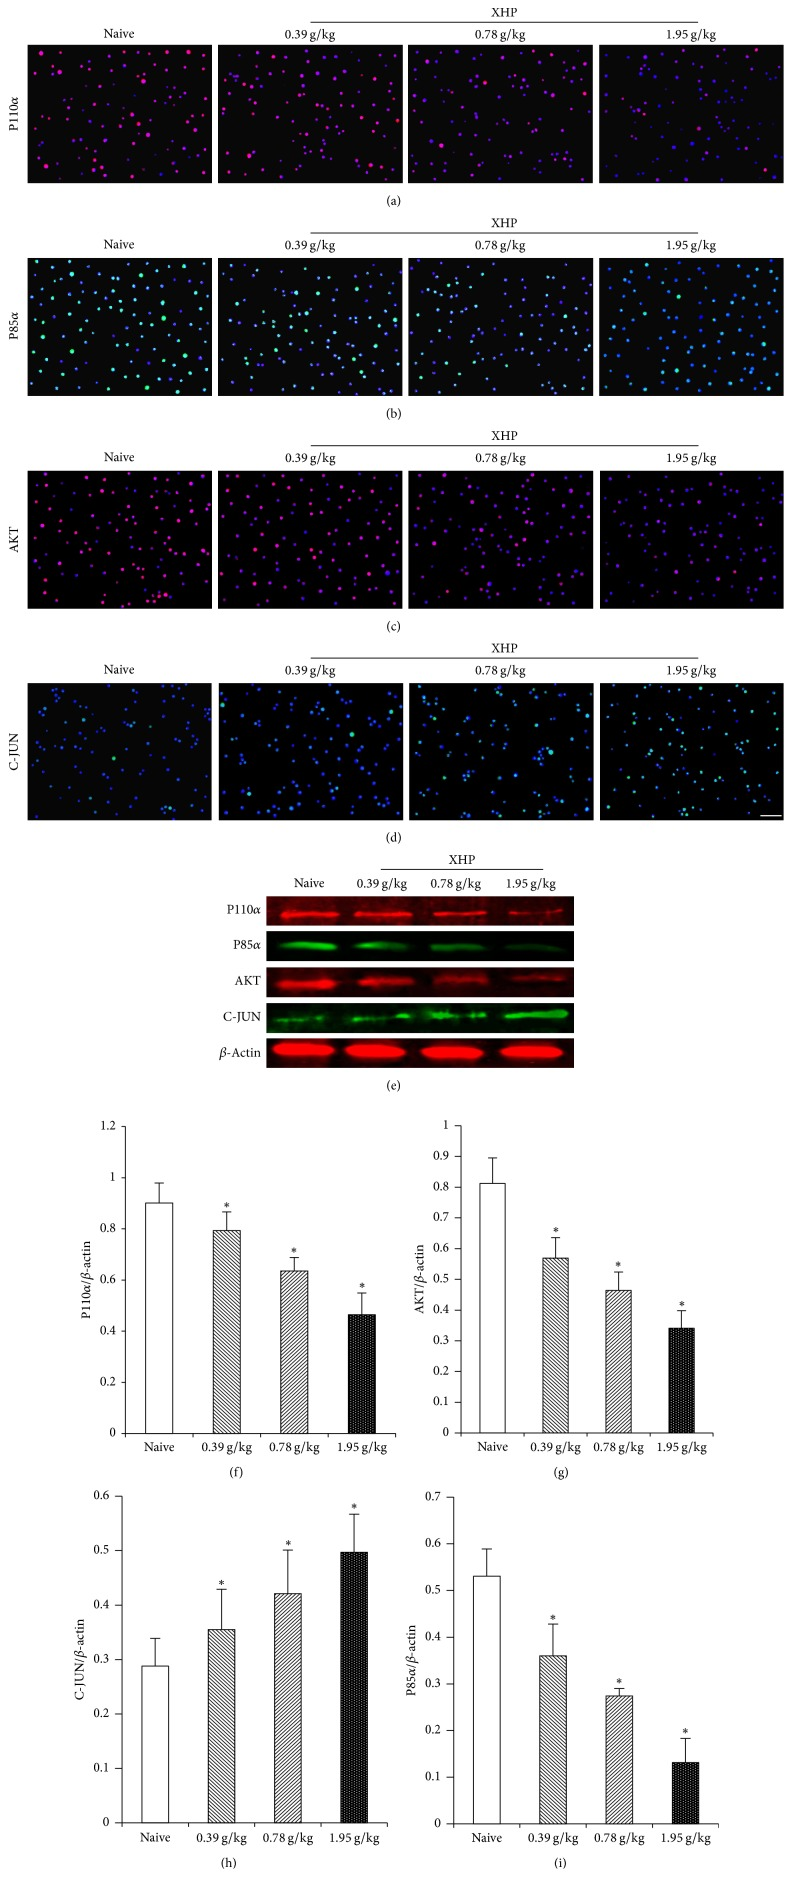 (a), (b), (c), and (d): the protein expression of P110 α , P85 α , <t>AKT,</t> and <t>C-JUN</t> on Treg cells in the tumor microenvironment by IF assay. (e): the protein expression of P110 α , P85 α , AKT, and C-JUN on Treg cells in the tumor microenvironment by WB. (f), (g), (h), and (i): the protein expression of P110 α , AKT, C-JUN, and P85 α in the Treg cells in the tumor microenvironment was expressed as the ratio of the gray level of each protein to the β -actin band.